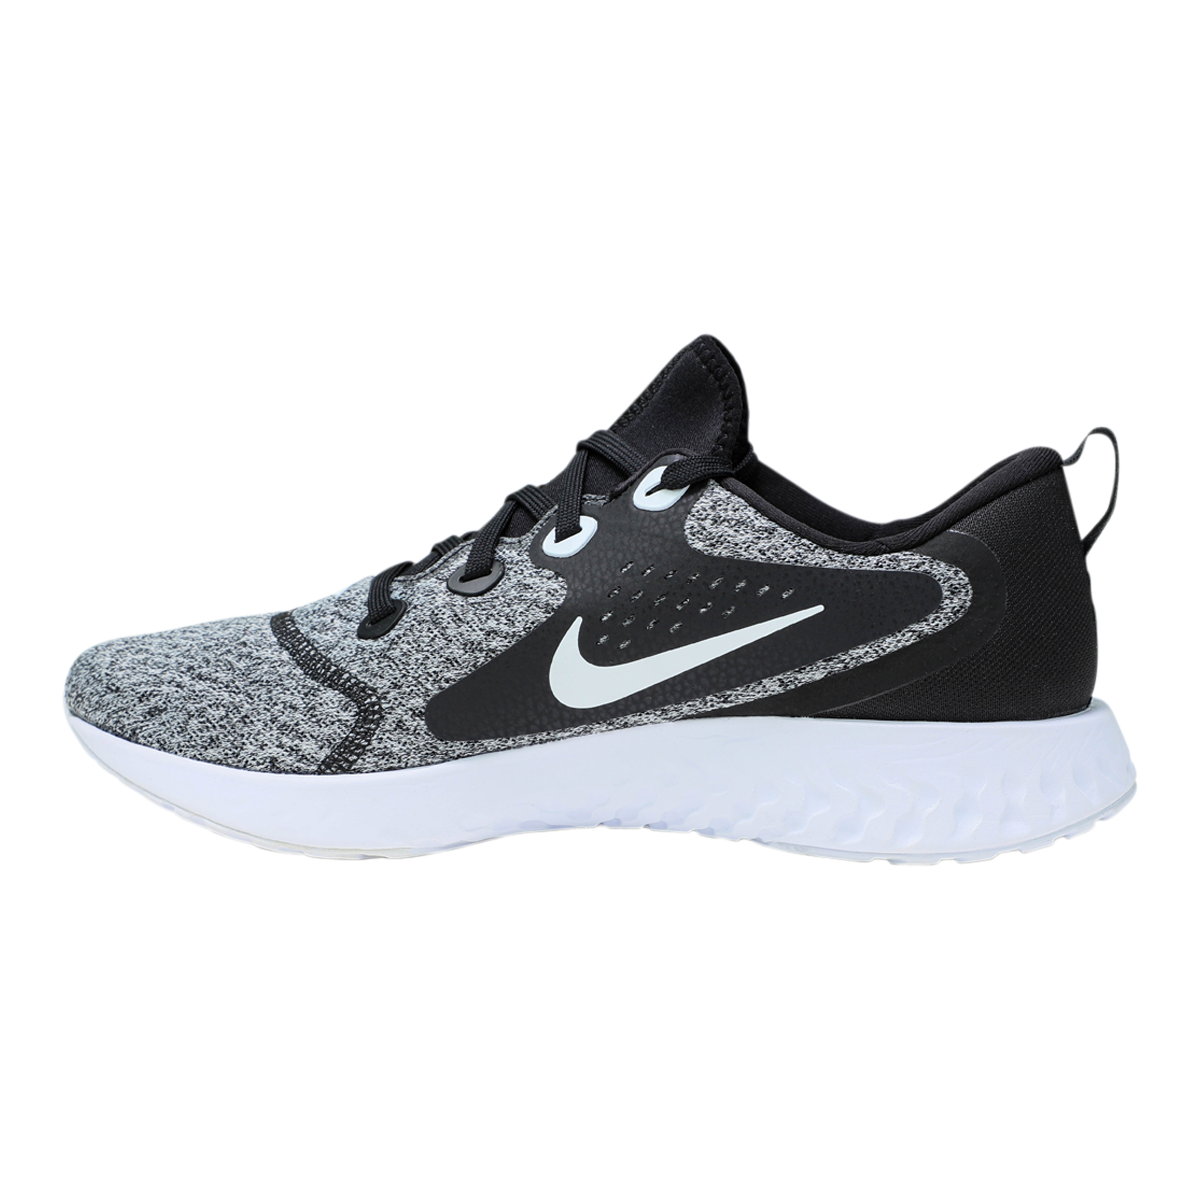 Nike-Men-039-s-Legend-React-Running-Shoes thumbnail 7